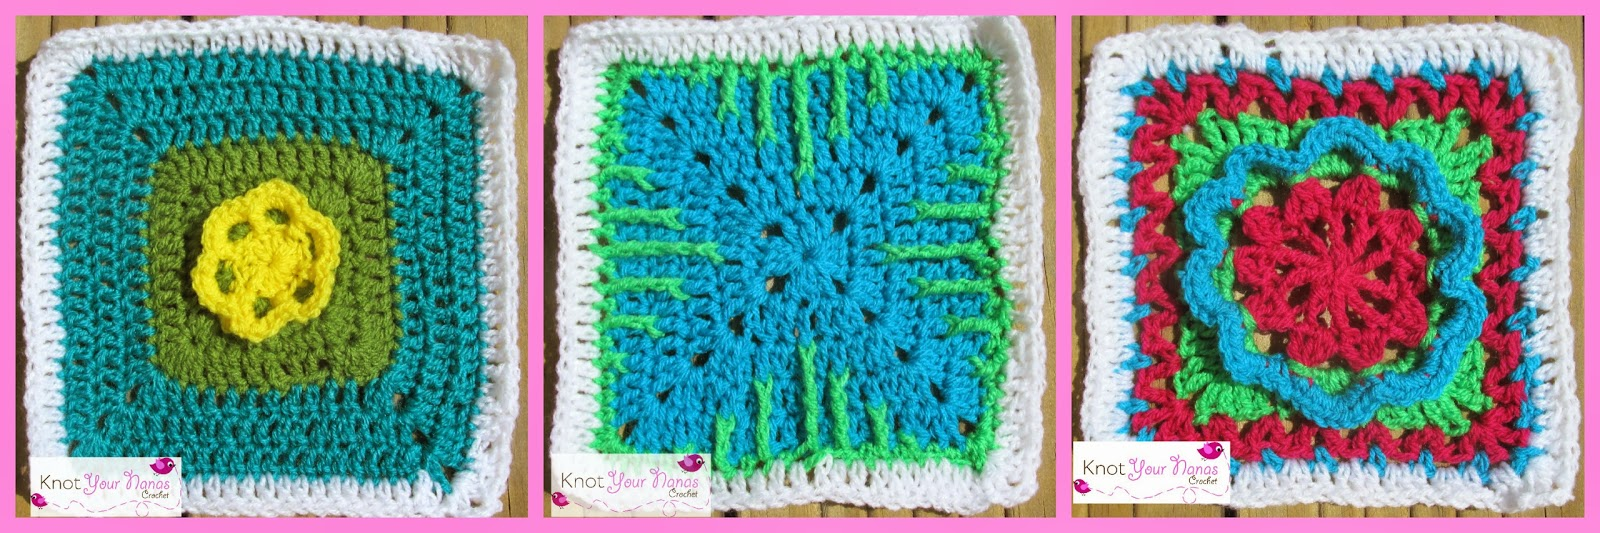 Http Www Ravelry Com Patterns Library Cats Claw Afghan  Or  Block